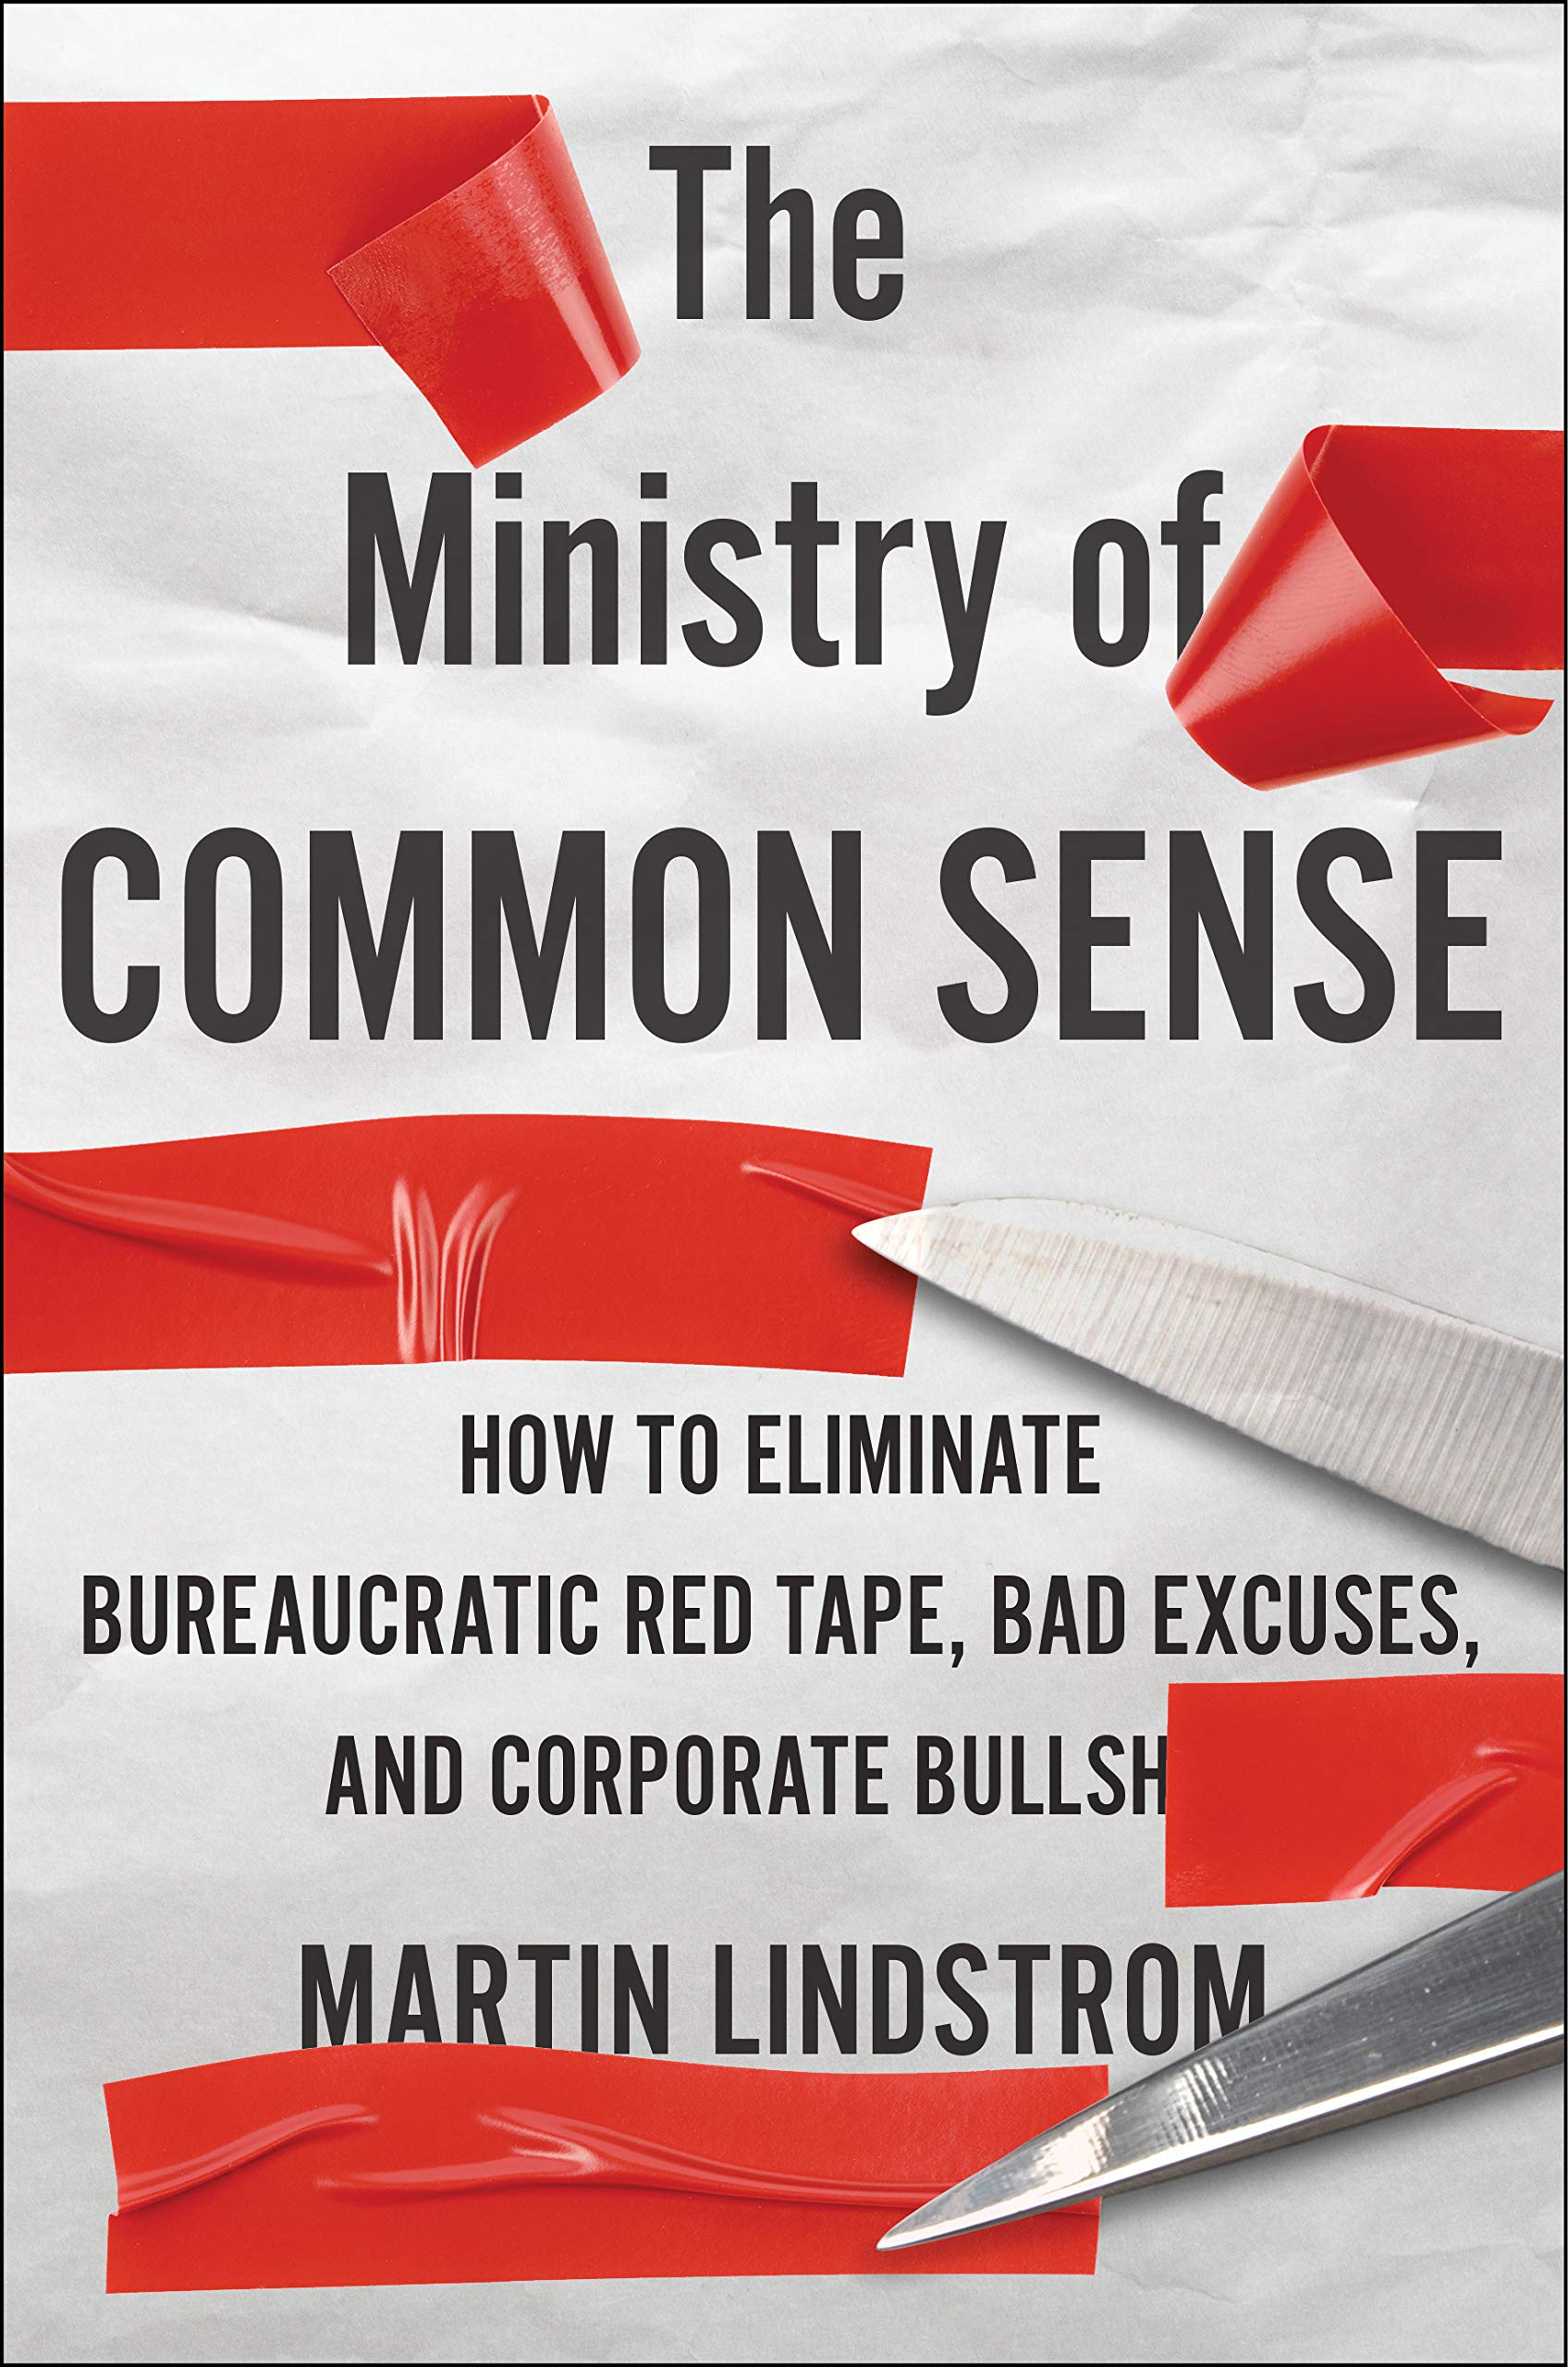 The Ministry of Common Sense.